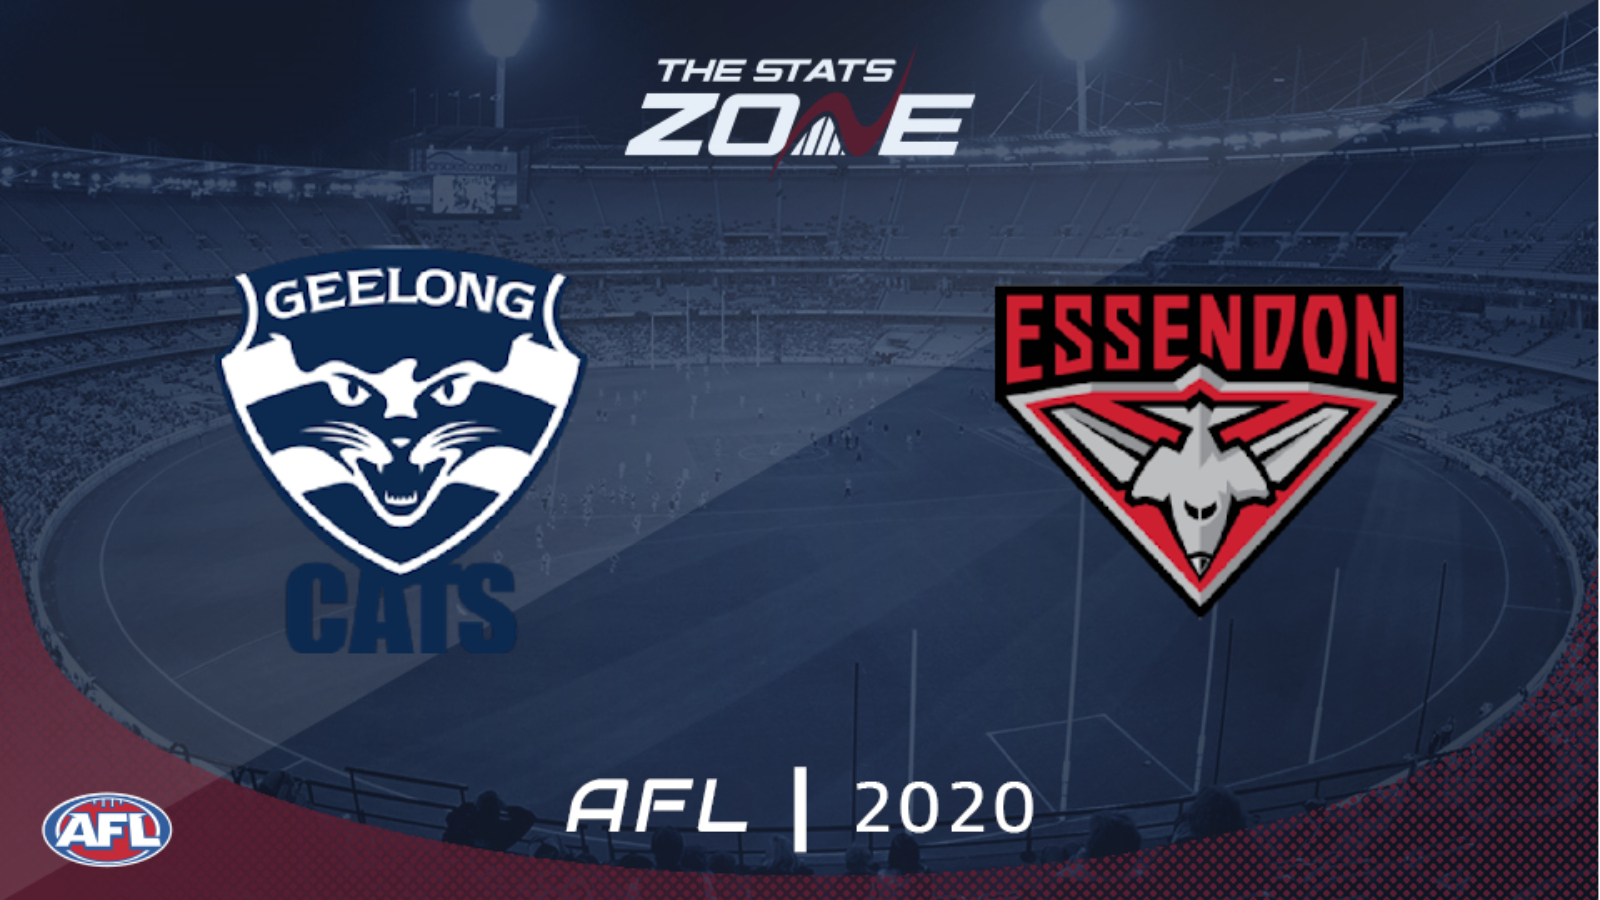 2020 Afl Geelong Cats Vs Essendon Preview Prediction The Stats Zone